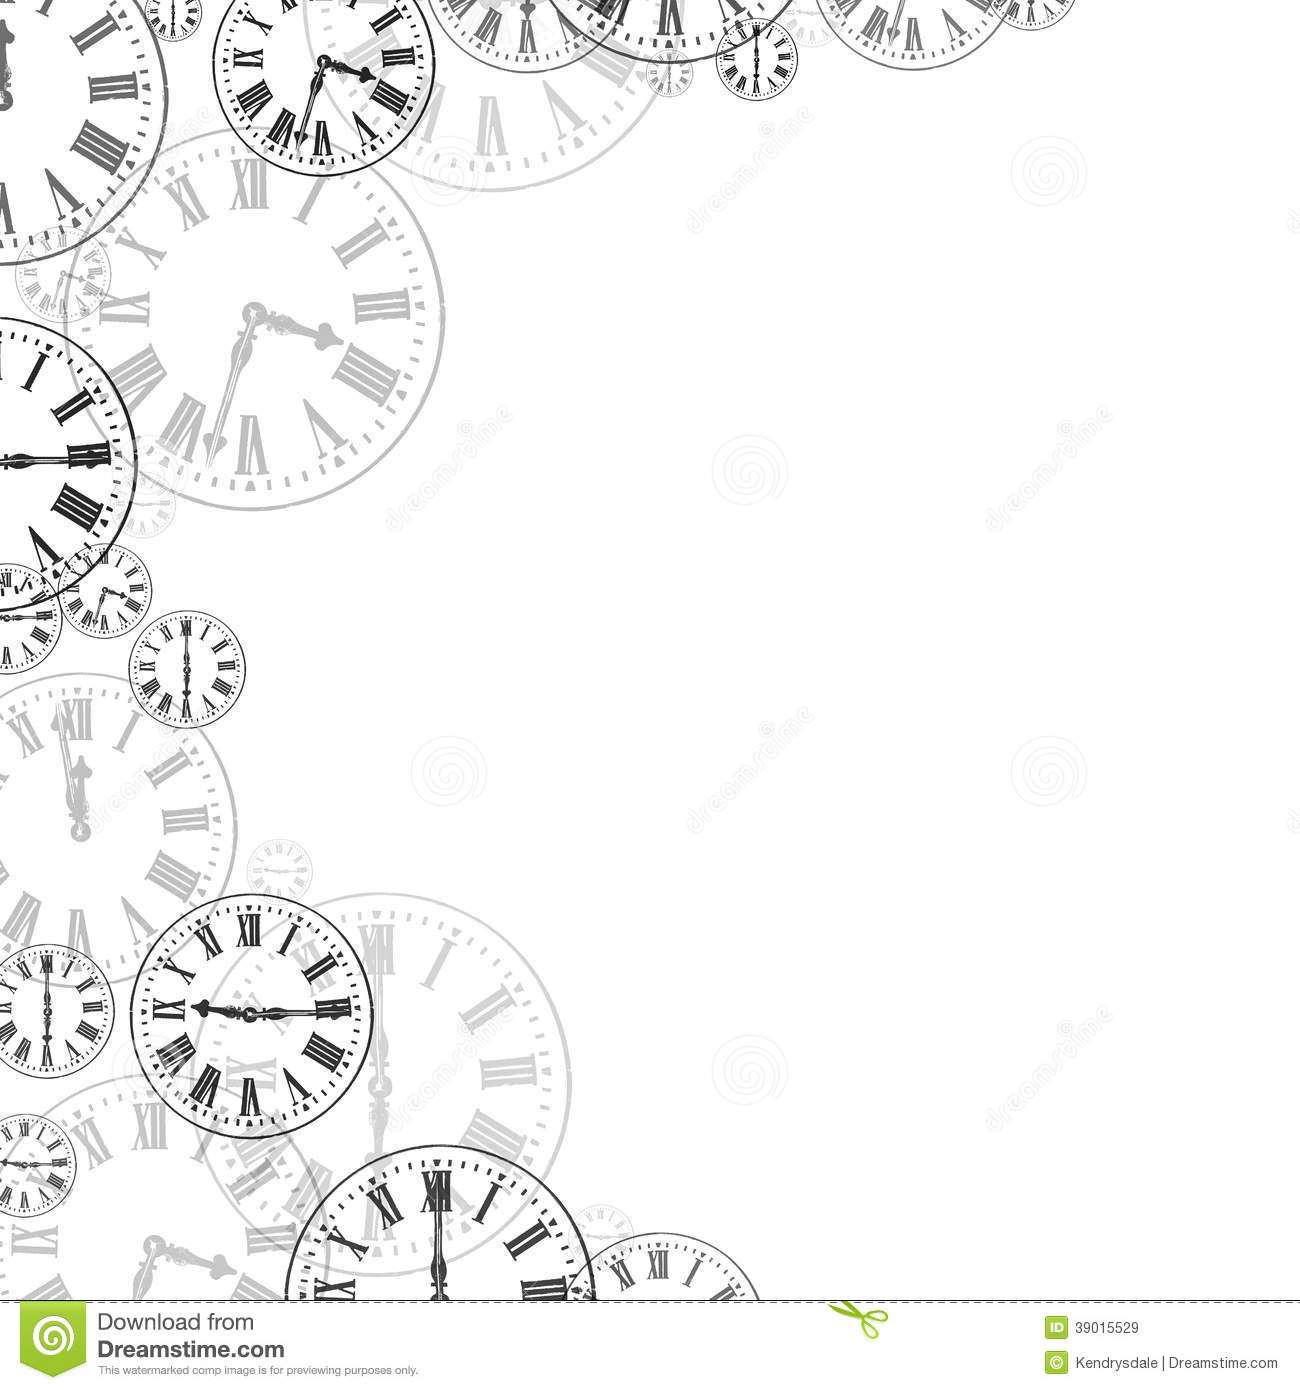 Clocks Black   White Background Border Stock Photo   Image  39015529